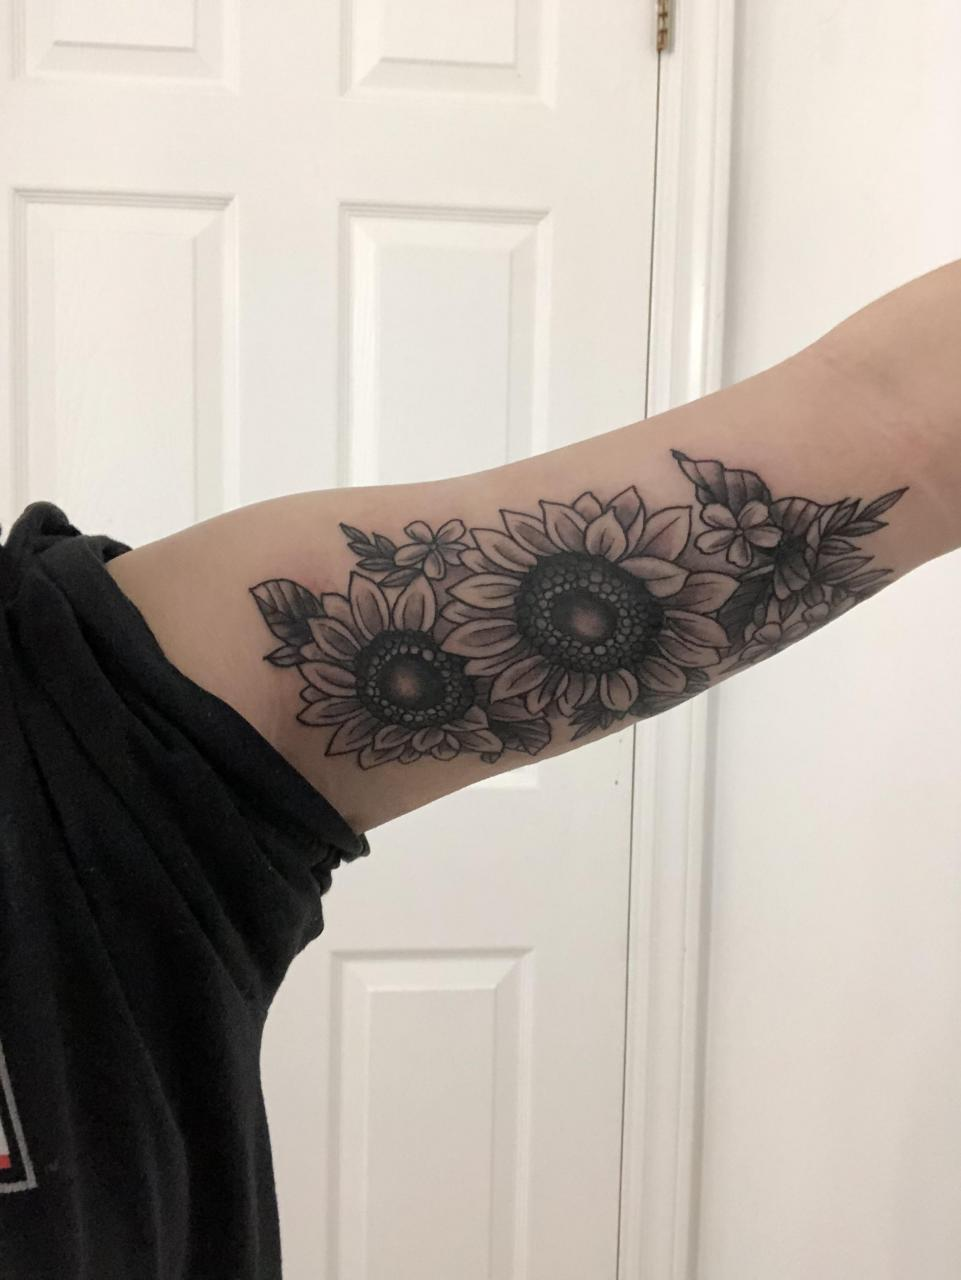 Sunflower tattoo done by Max Baird @ White Lotus Tattoo in Fredericton! Started getting tattoos when I was 16, and this was my second (and so far favourite!) tattoo:)